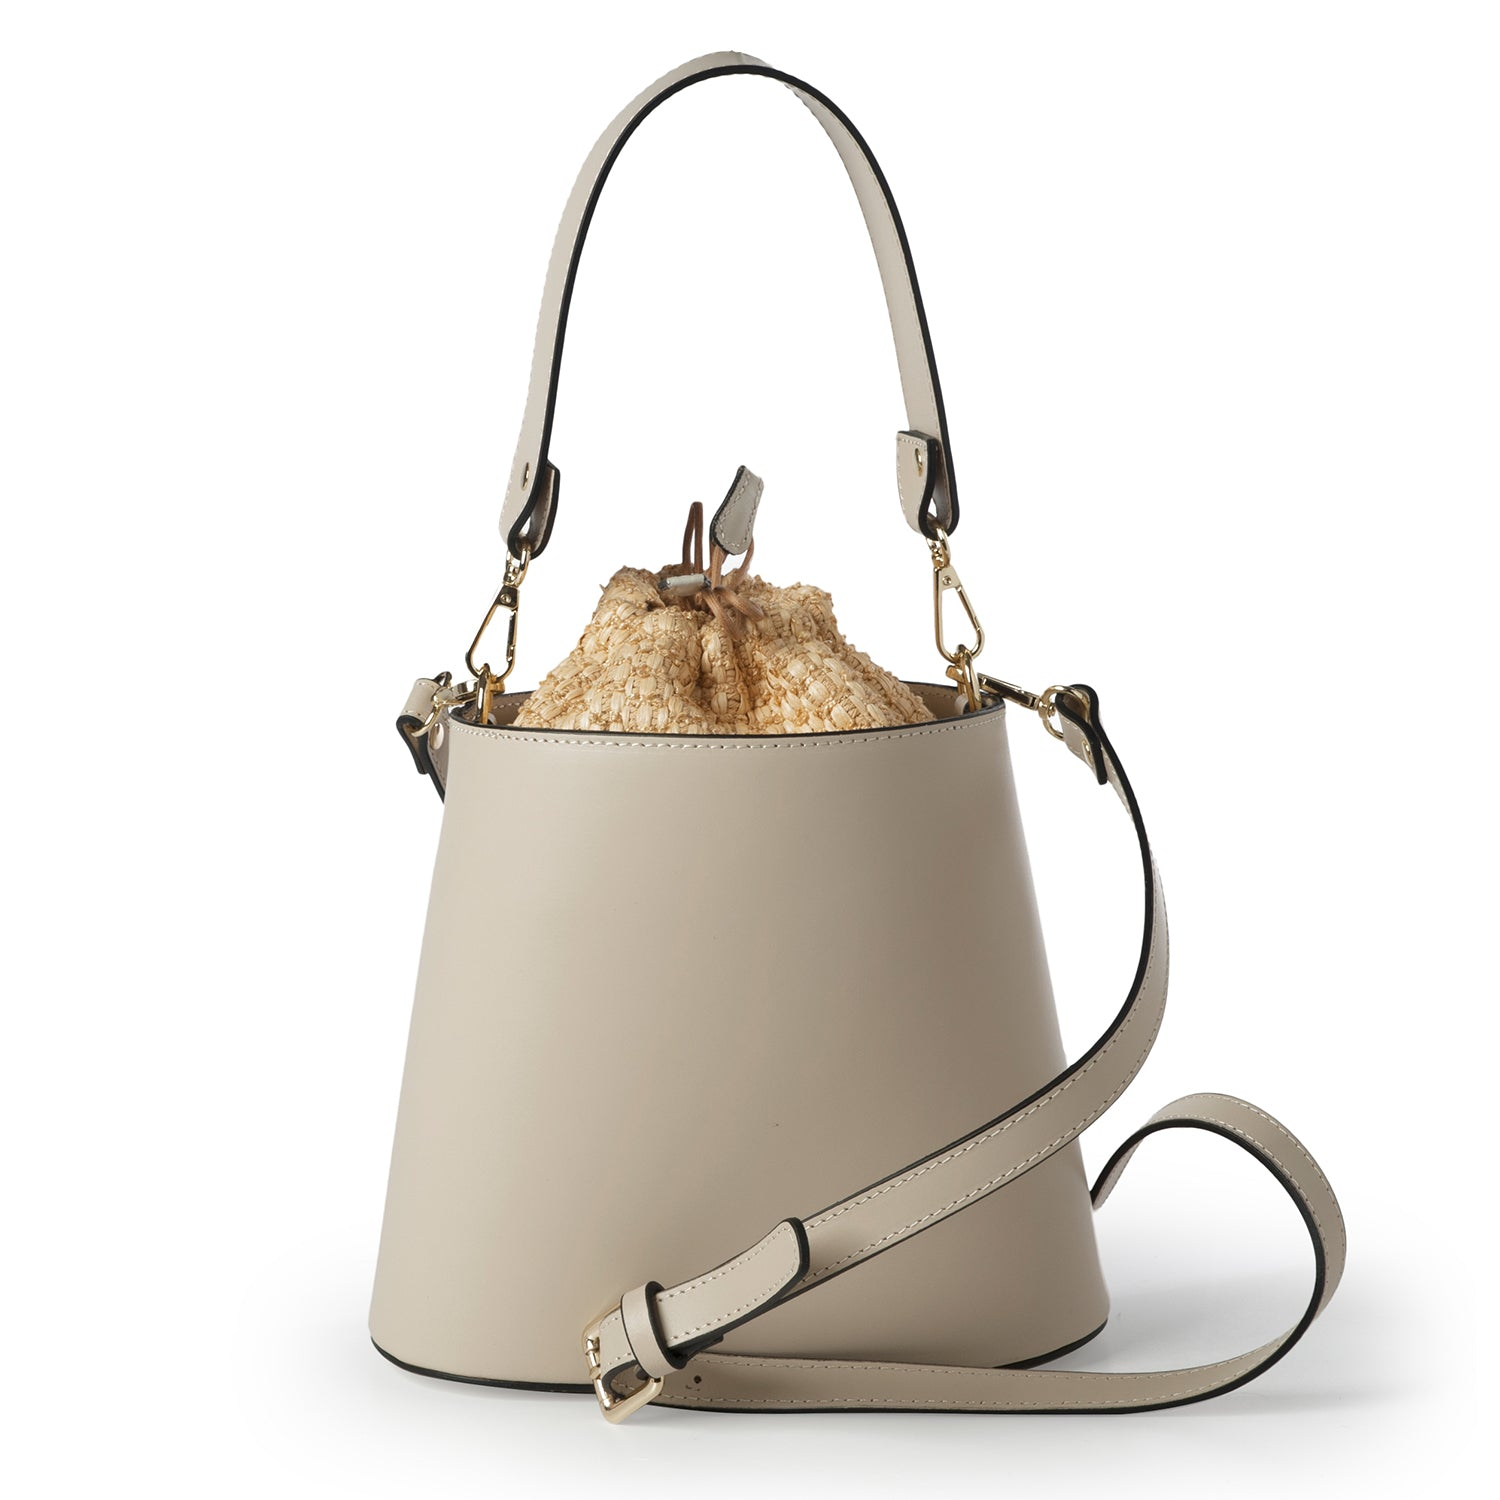 Ruga Leather & Straw Bucket Bag (B51M)